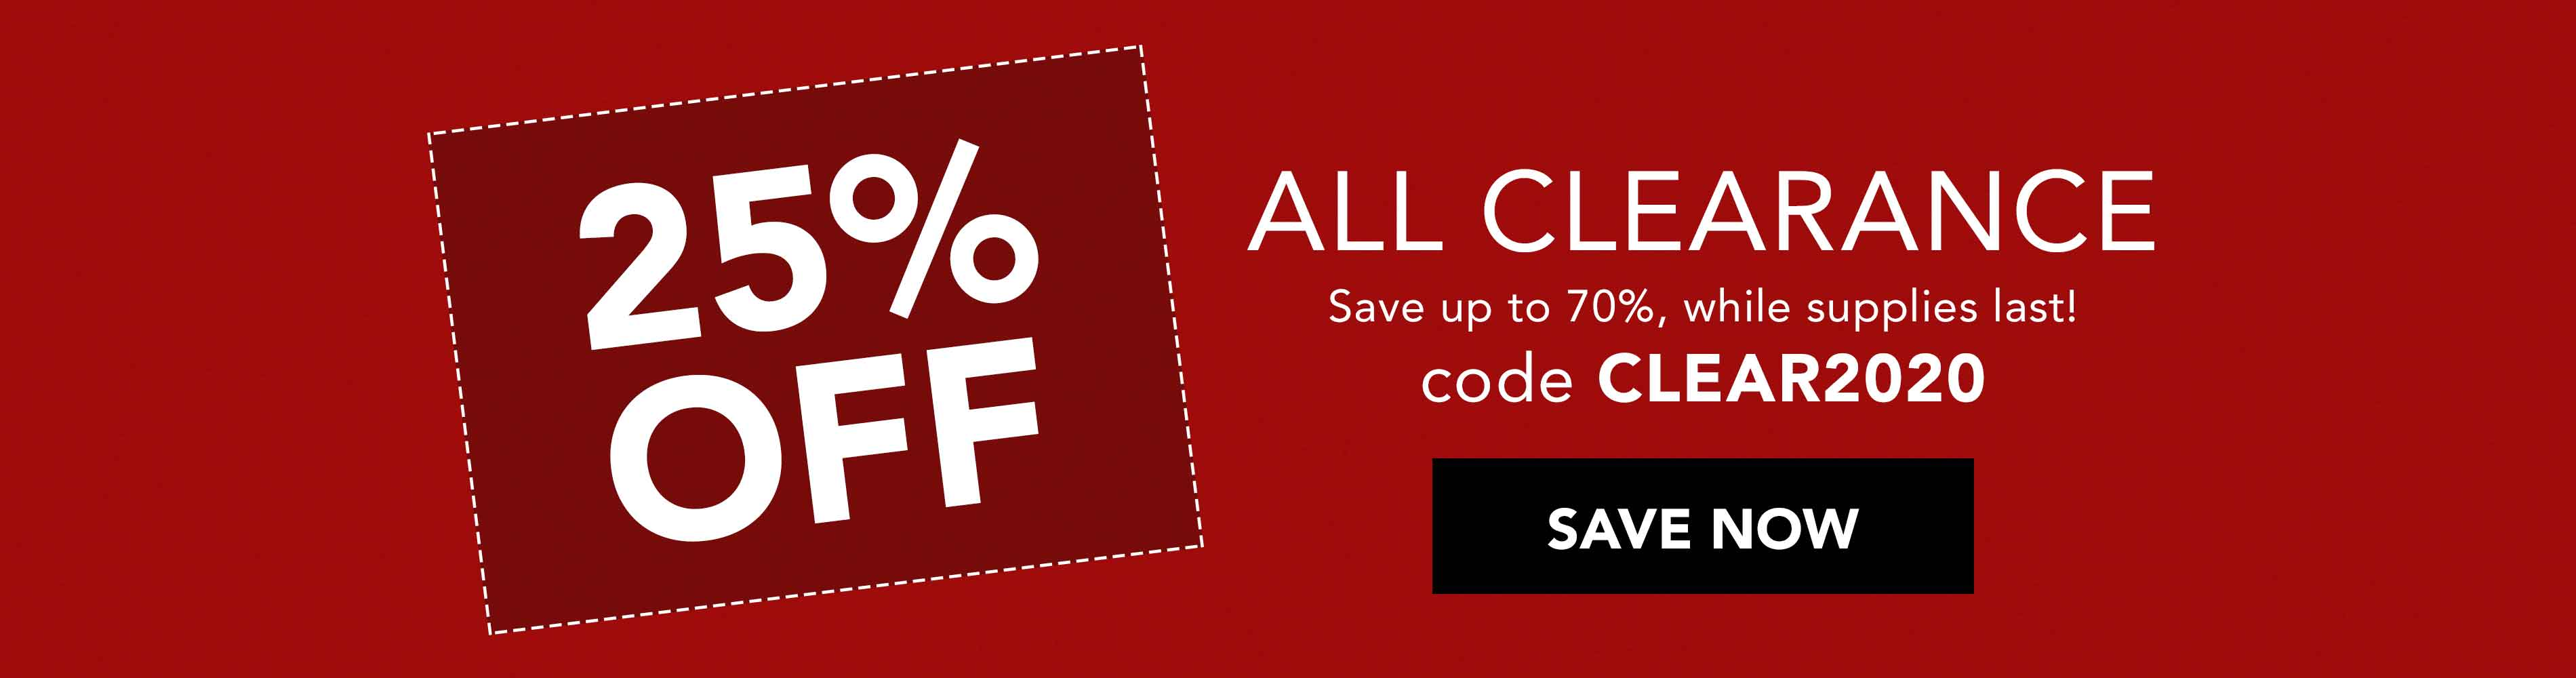 25% Off All Clearance! Save up to 70%, while supplies last. Use code CLEAR2020 at checkout. Ssave Now >